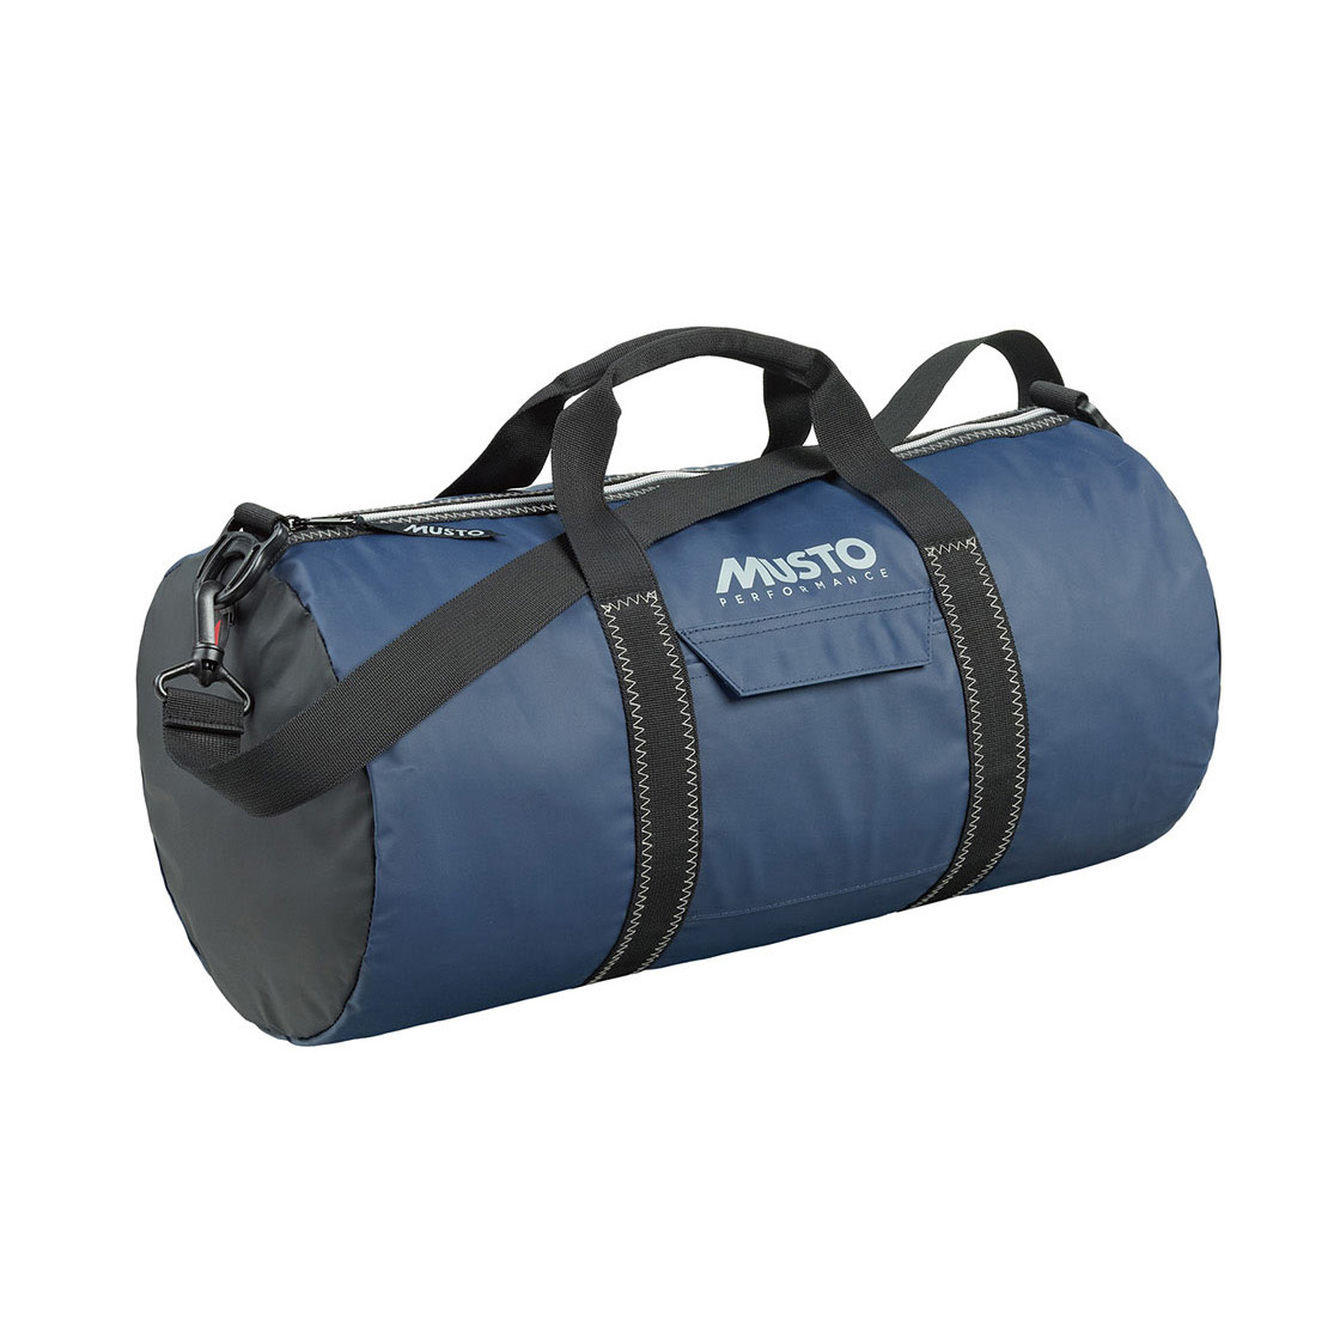 GENOA MEDIUM CARRYALL